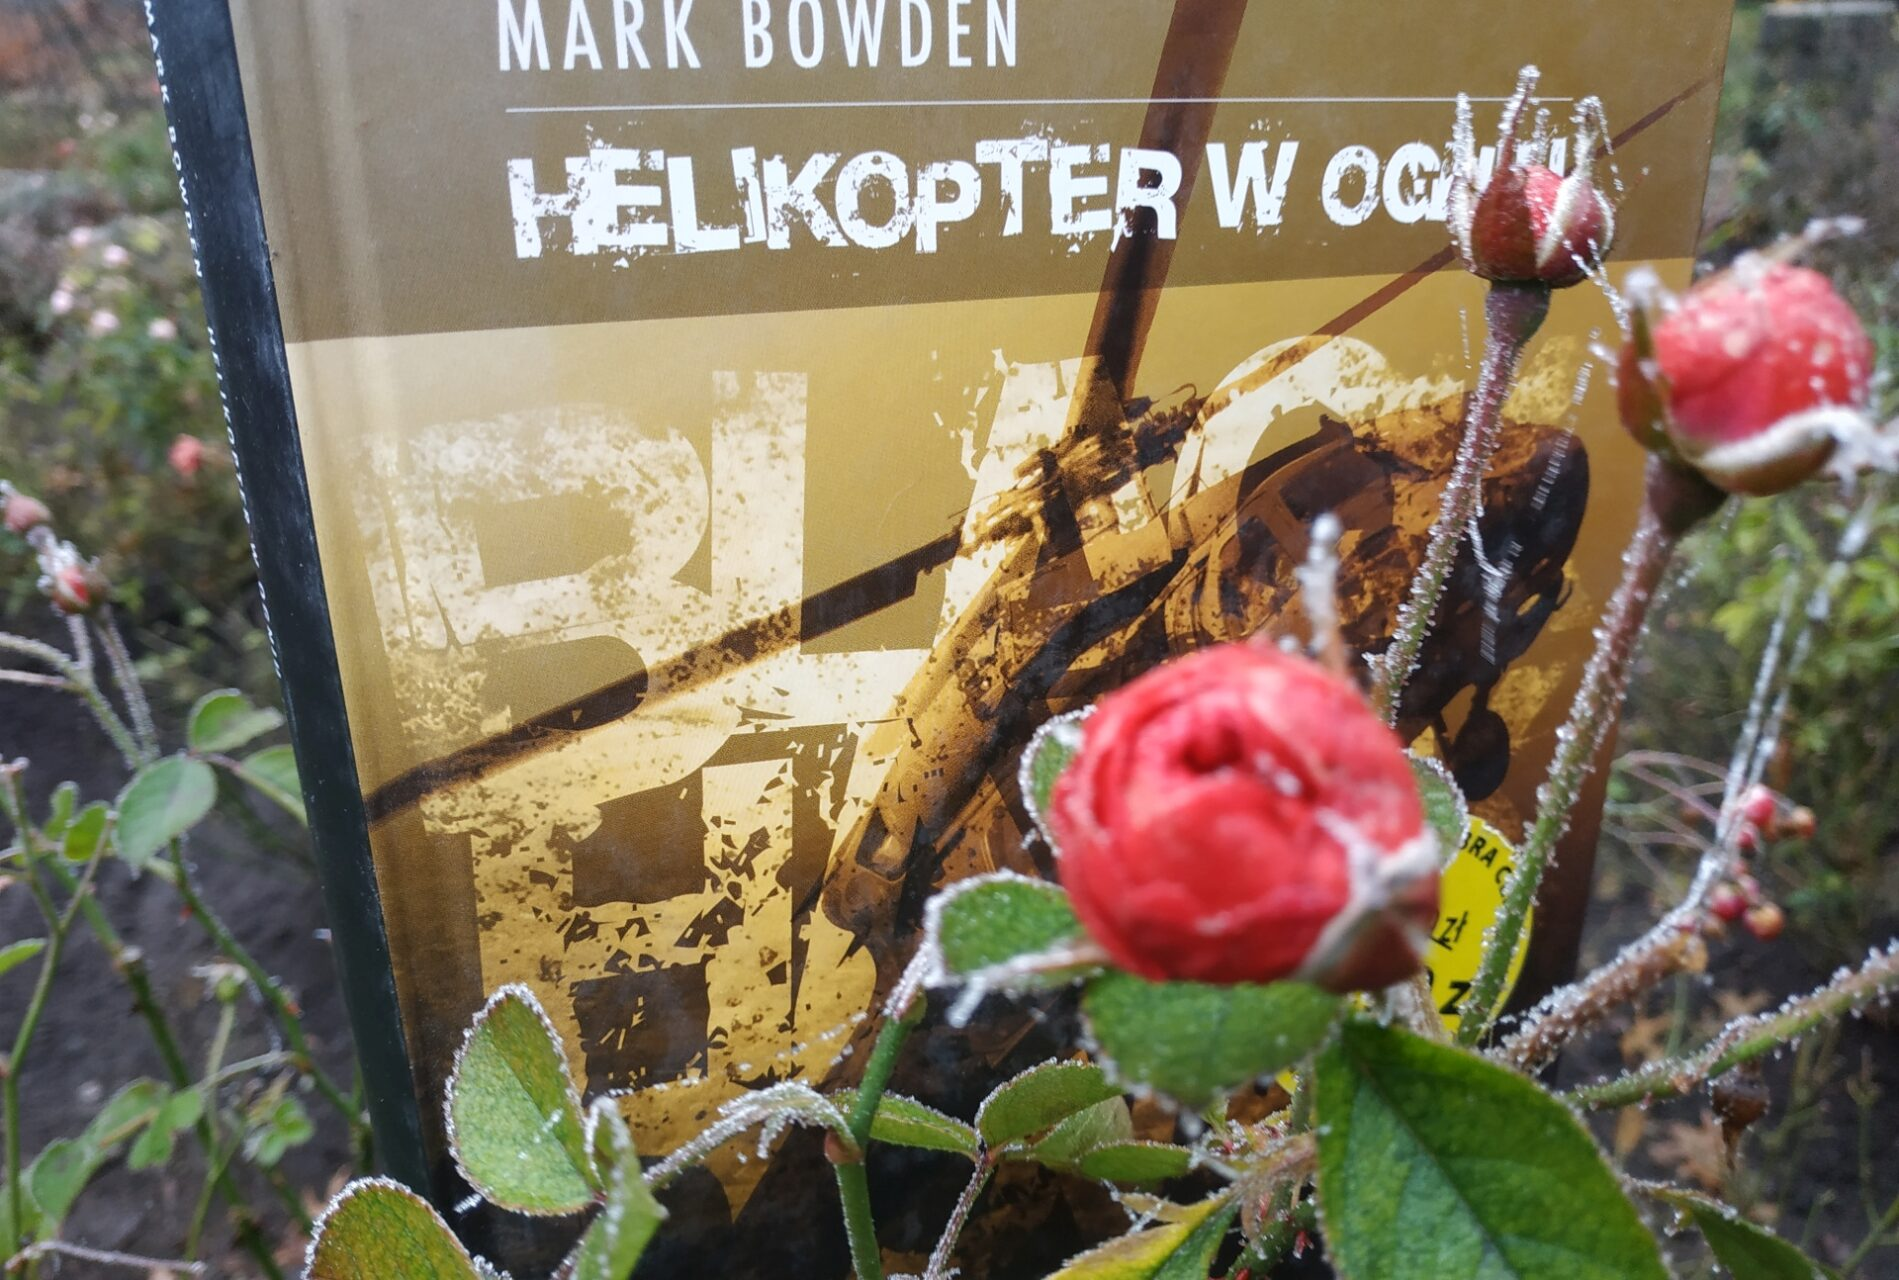 mark-bowden-helikopter-w-ogniu